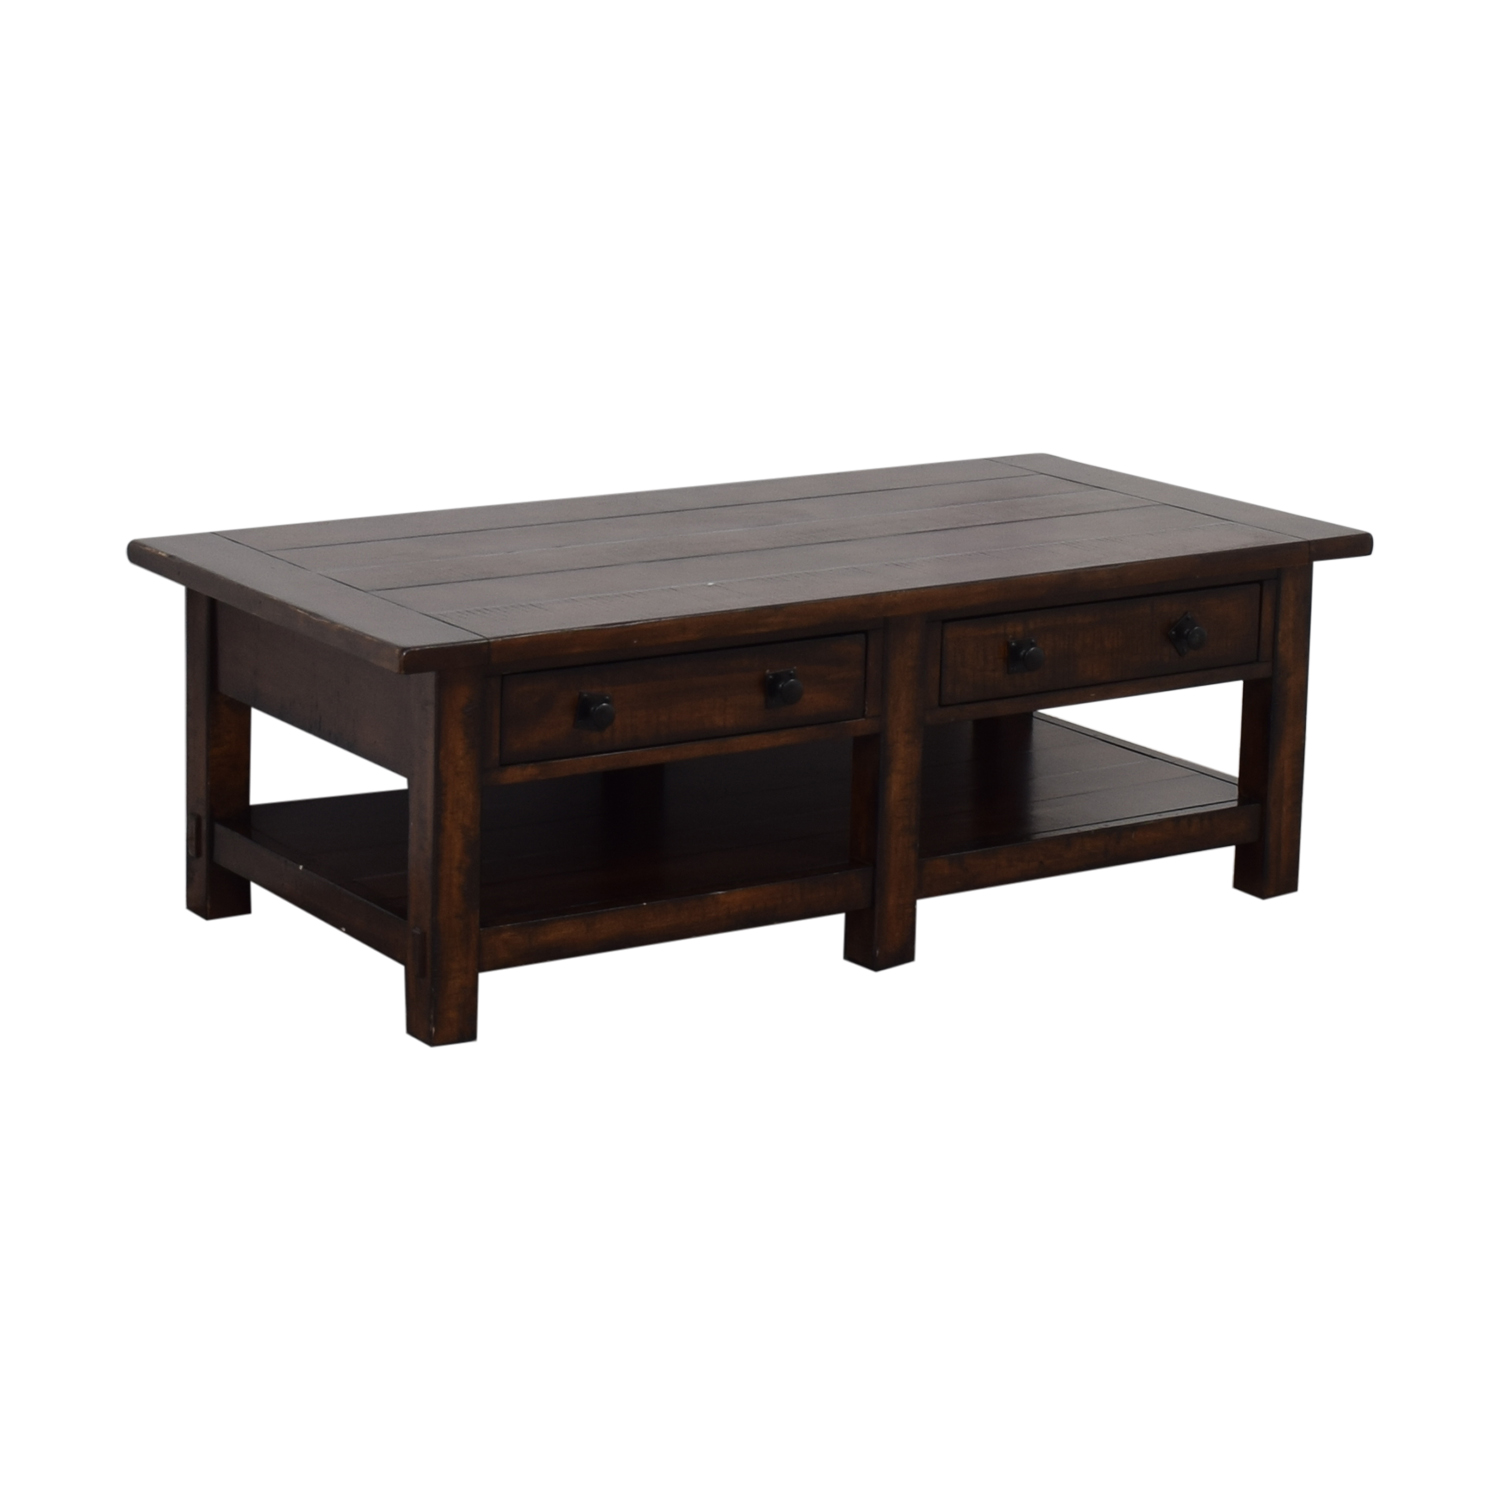 Pottery Barn Pottery Barn Benchwright Two-Drawer Coffee Table Coffee Tables